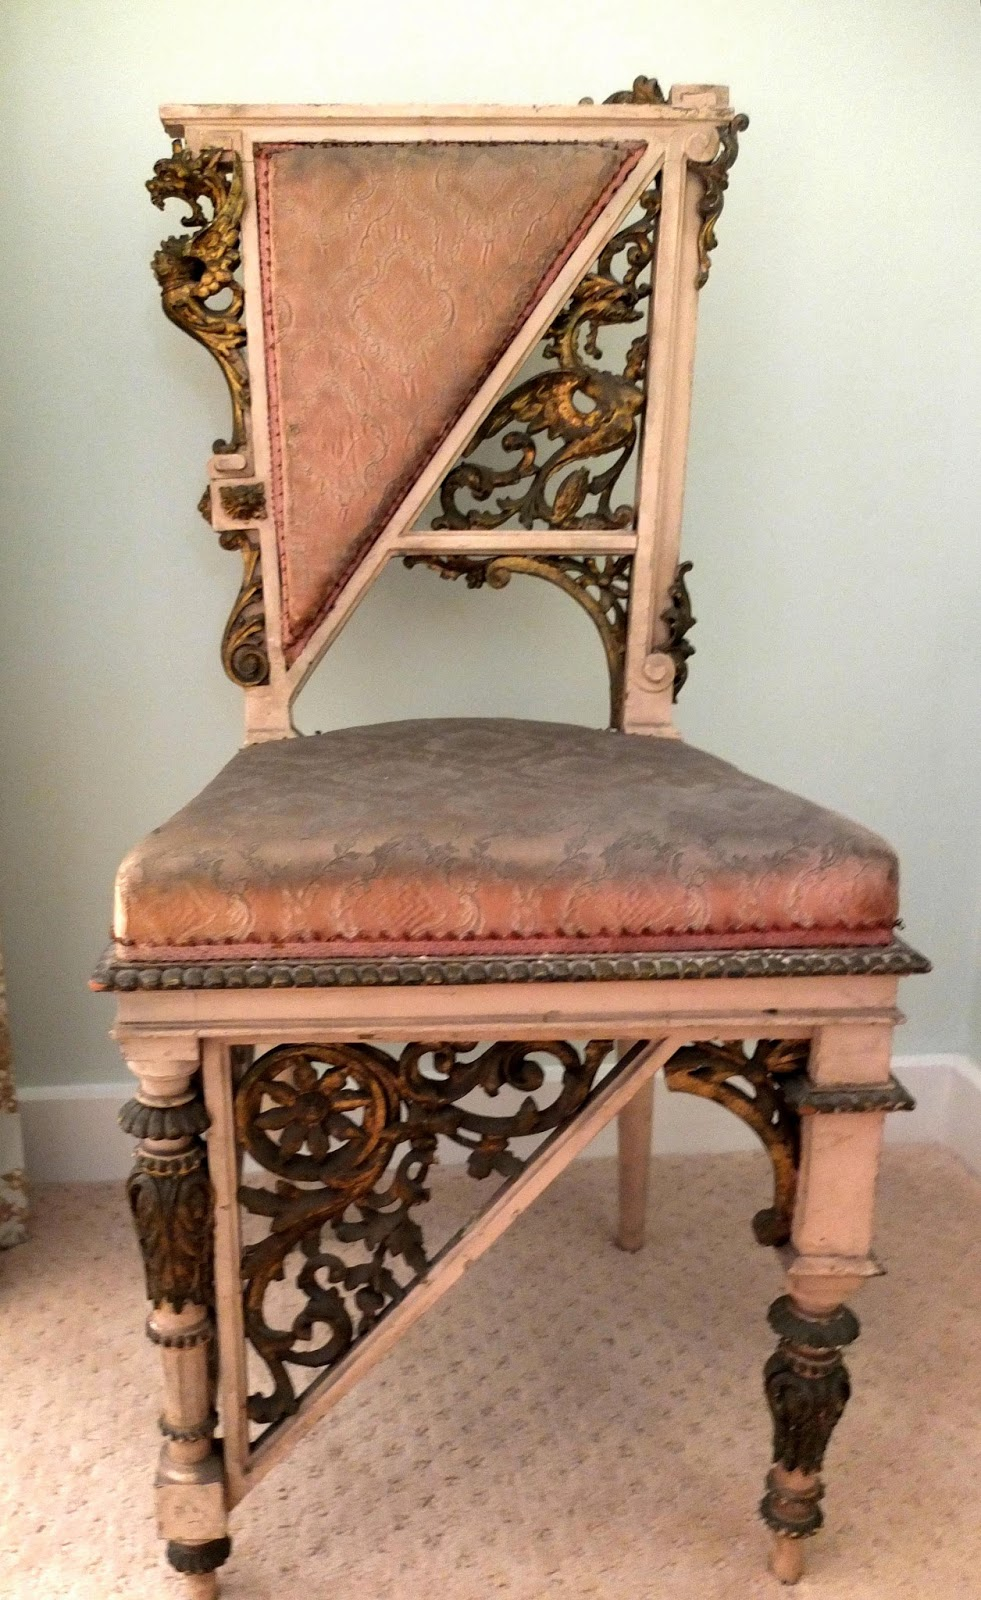 Antique Style: Unusual Chairs - Antique Italian Aesthetic ...